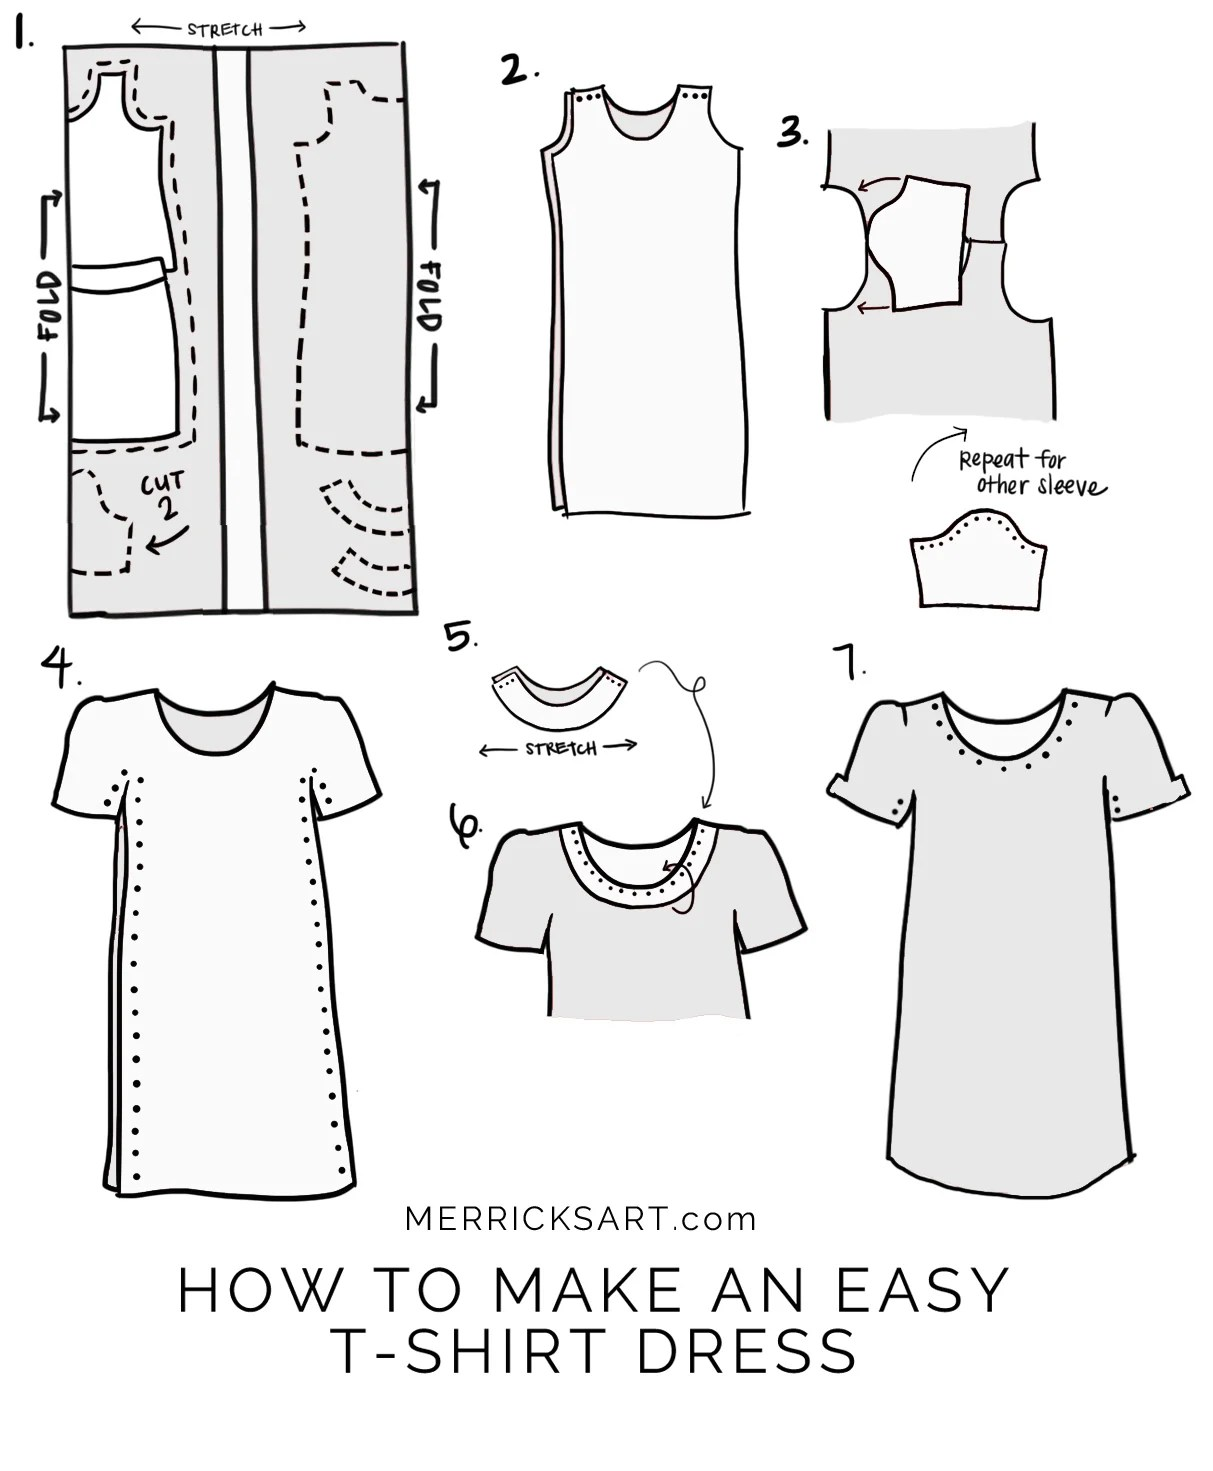 Merrick's Art // Style + Sewing for the Everyday GirlHow